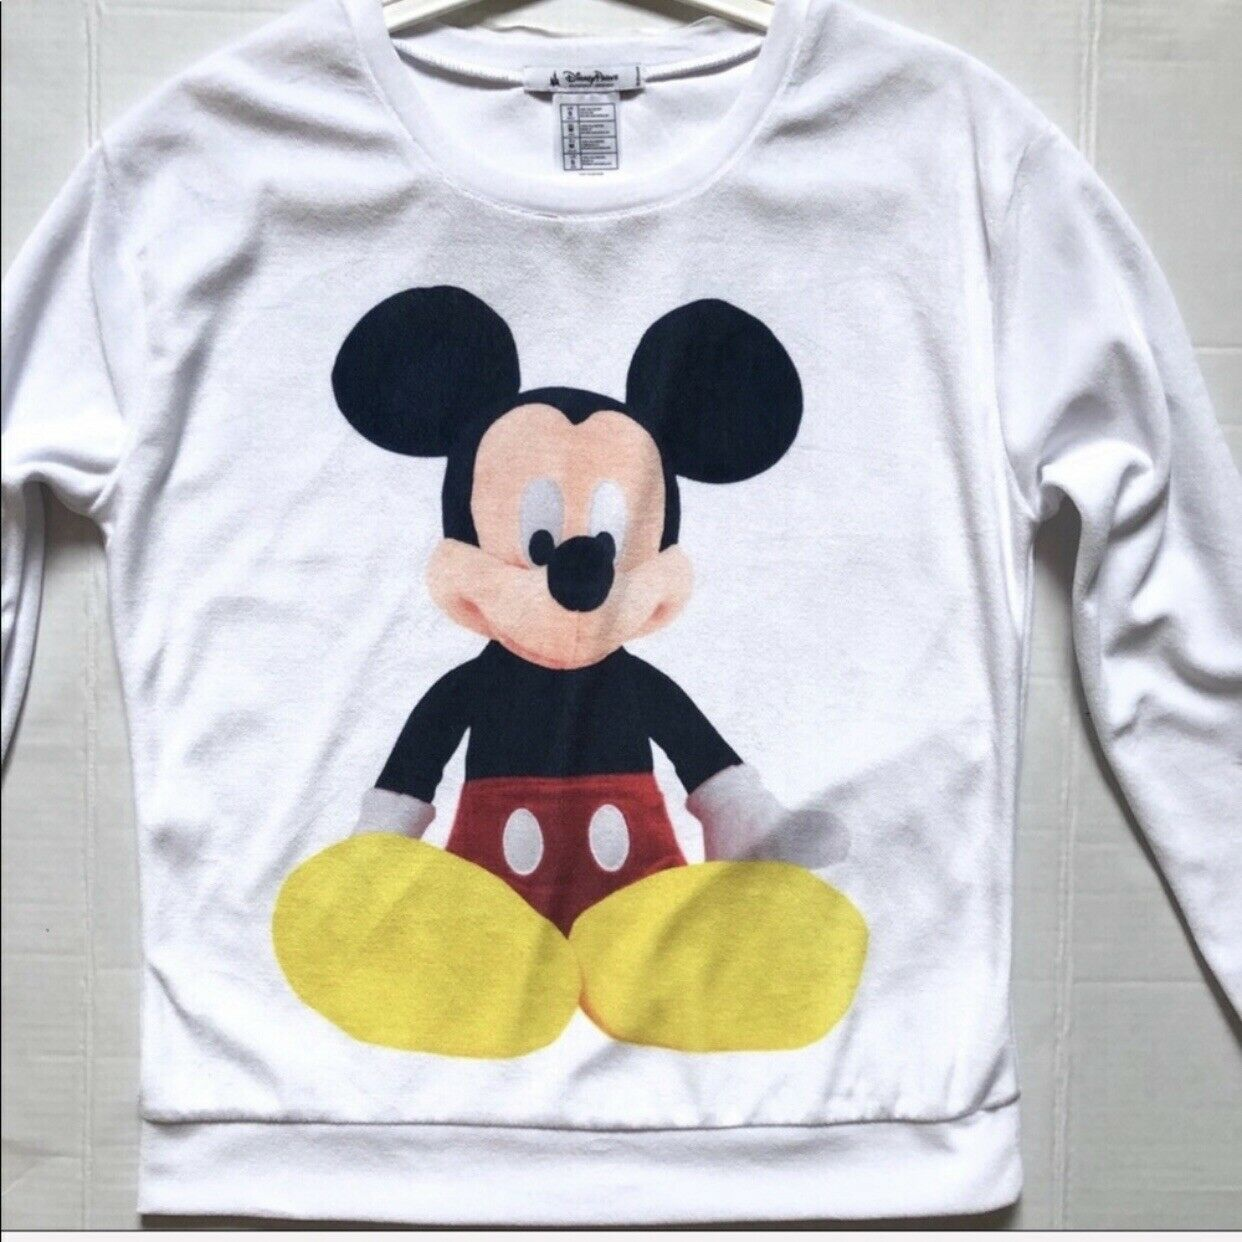 Disney Parks Authentic Mickey Mouse, White Sweater Long Sleeves size Small